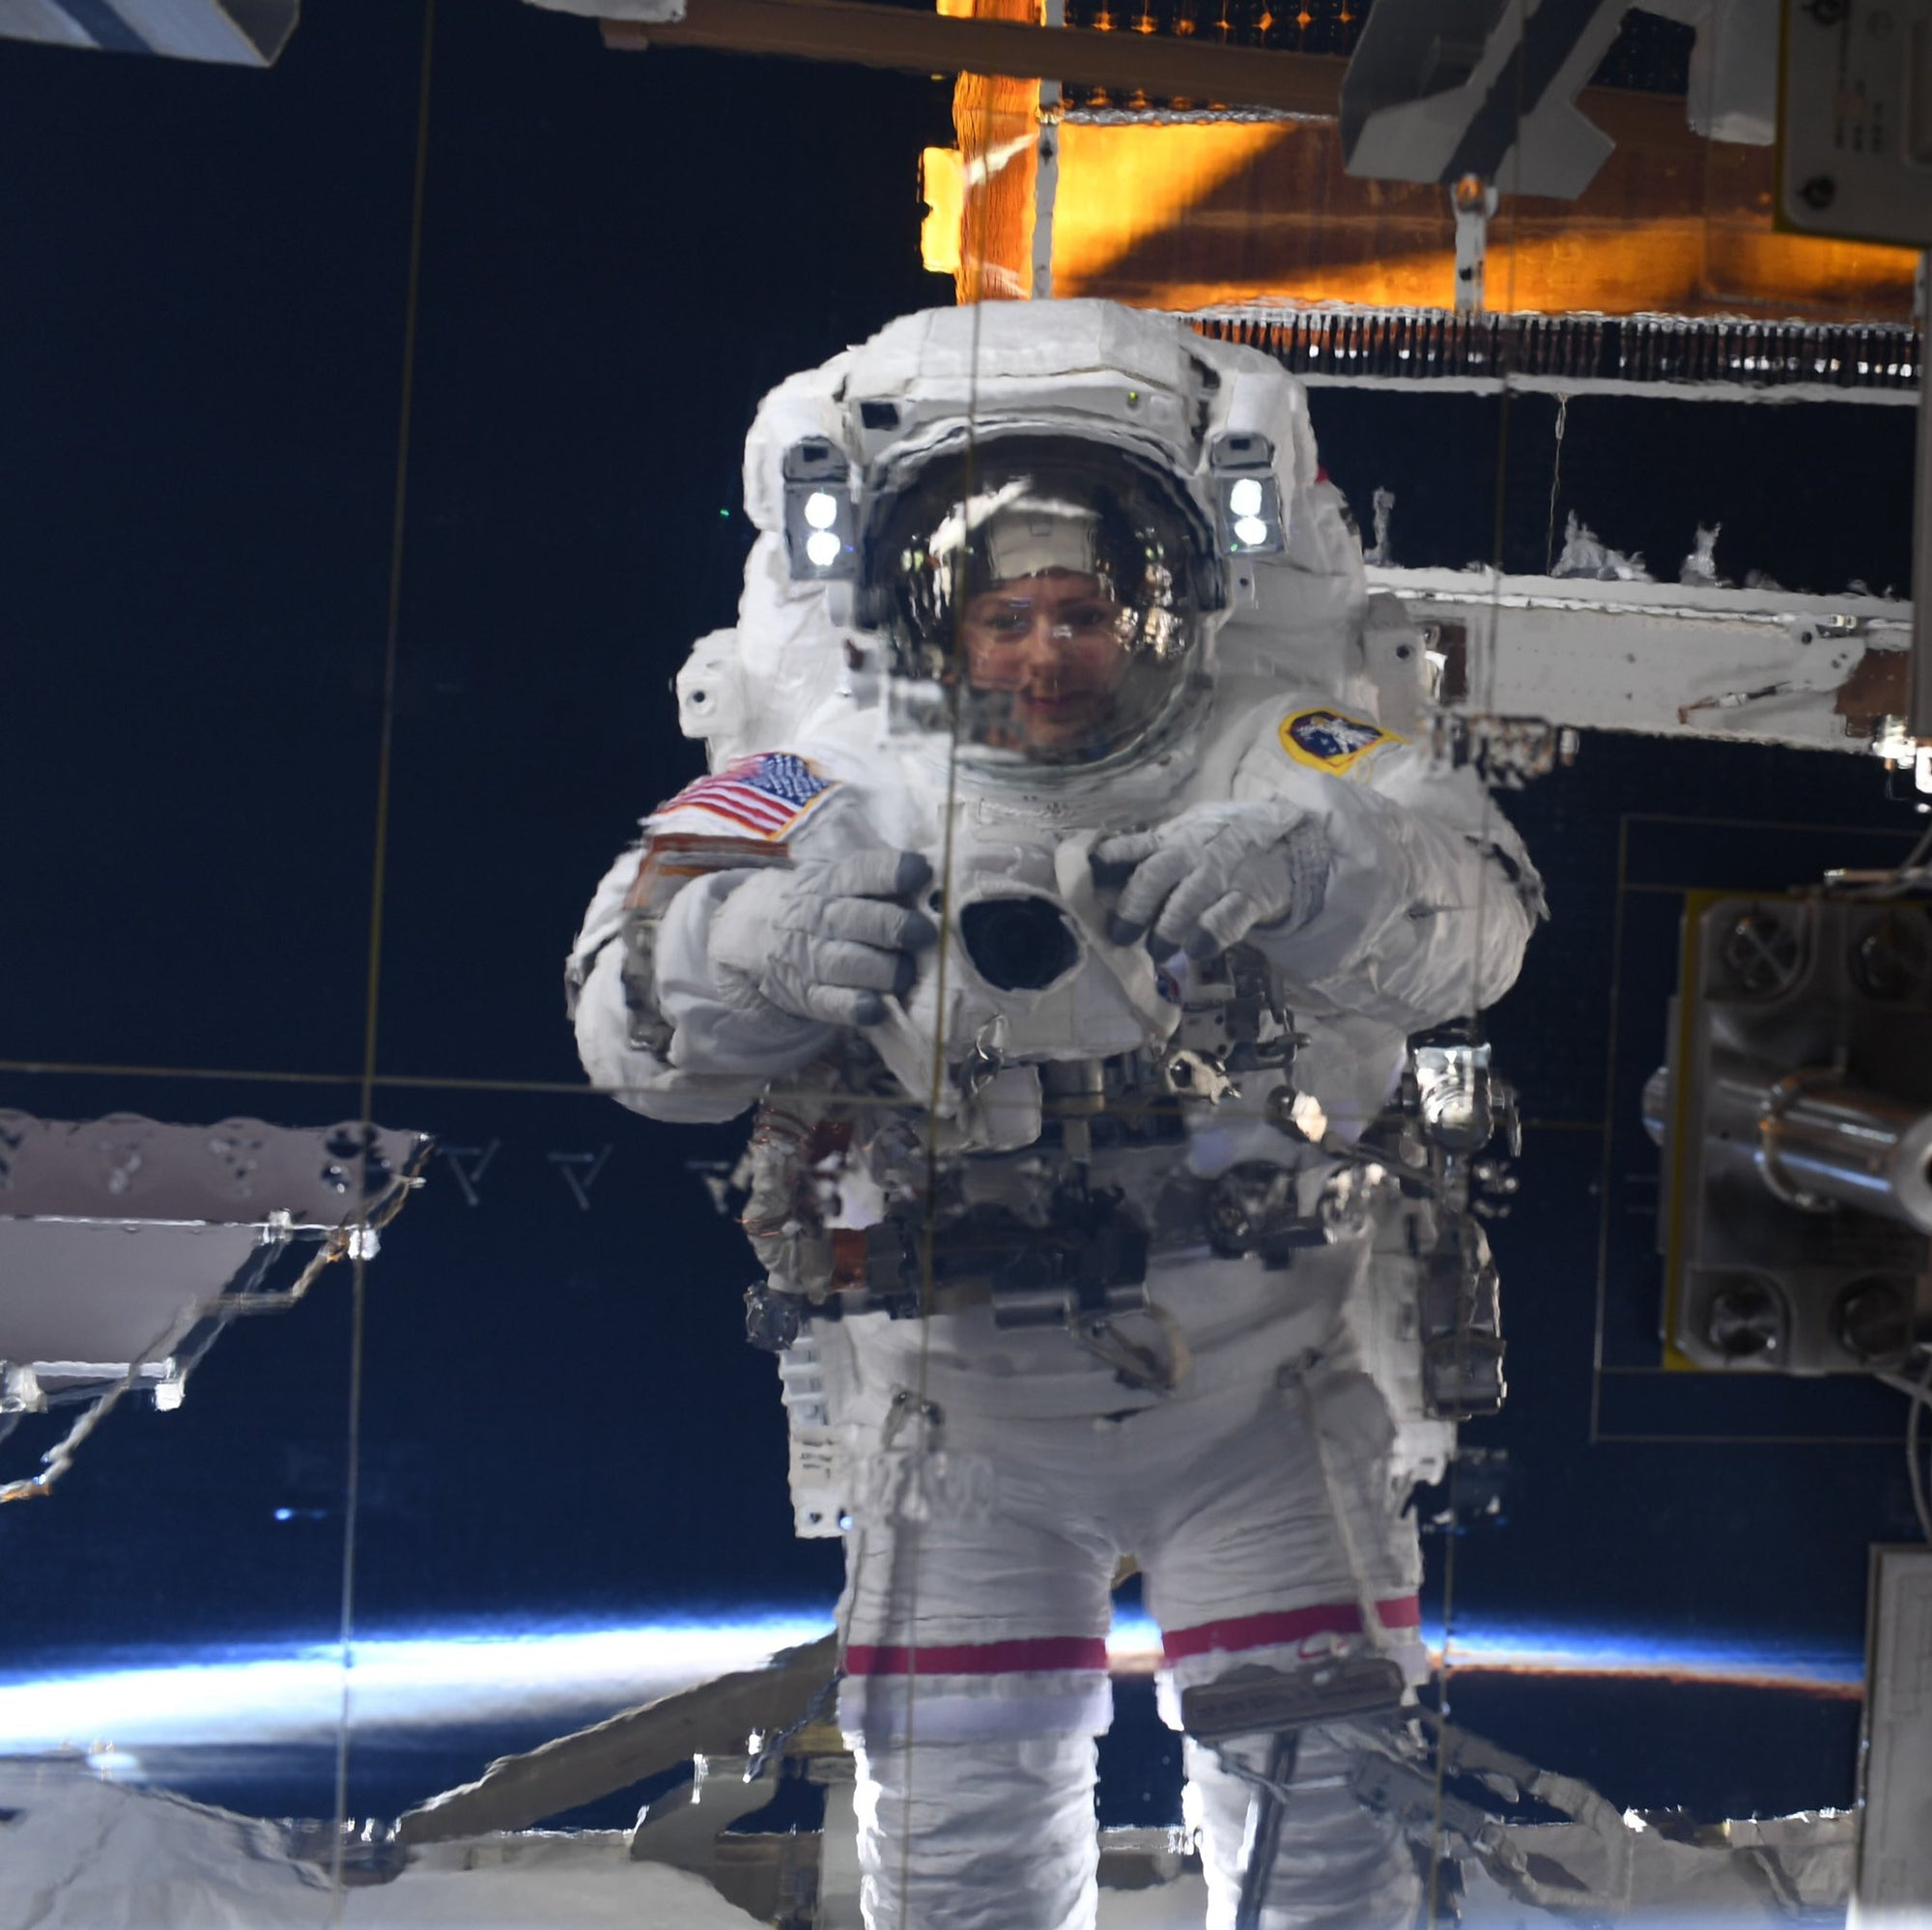 All-Female NASA Astronauts conducted a spacewalk to upgrade a Space Station's power system